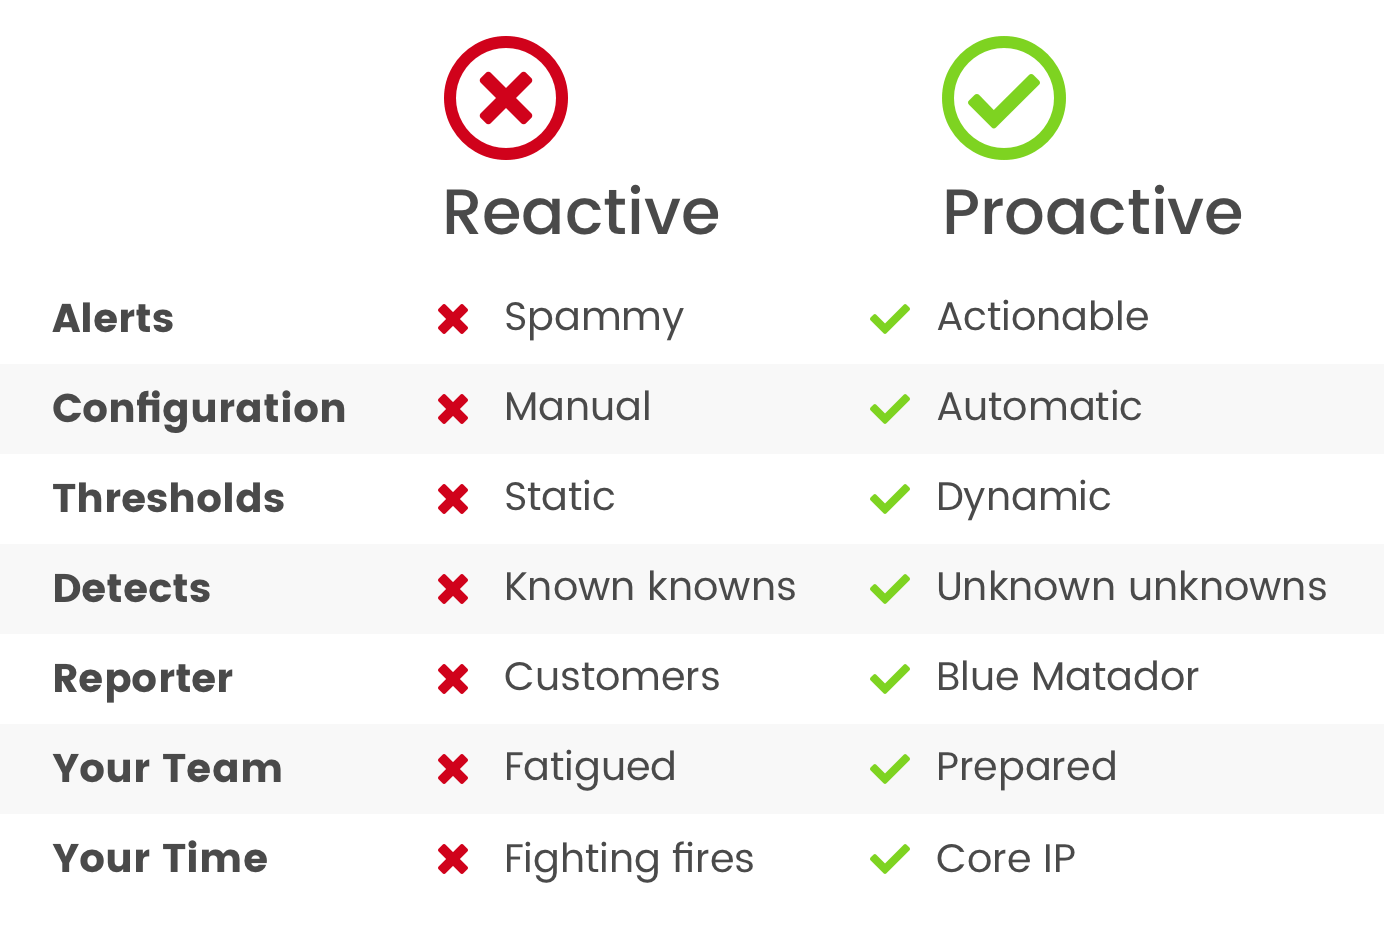 Proactive Monitoring is better than Reactive Monitoring